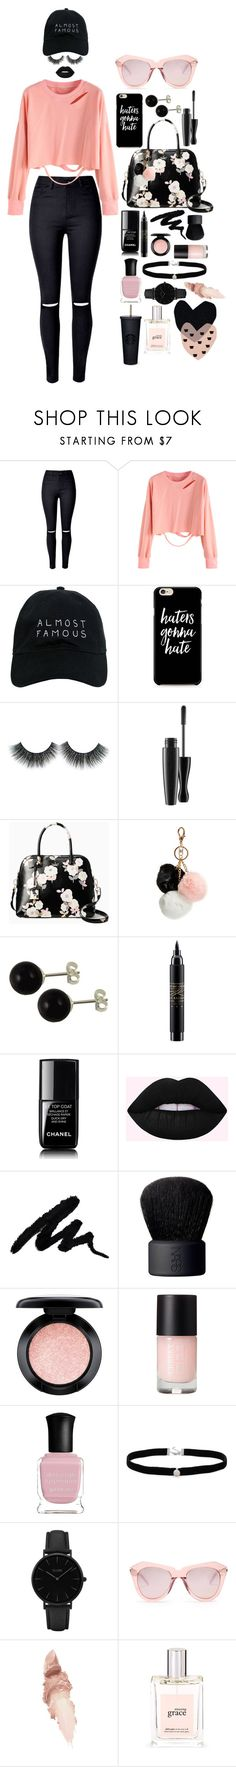 """""""Haters Gonna Hate"""" by elliskhanby on Polyvore featuring WithChic, Nasaseasons, Kate Spade, GUESS, MAC Cosmetics, Chanel, NARS Cosmetics, Deborah Lippmann, Amanda Rose Collection and CLUSE"""